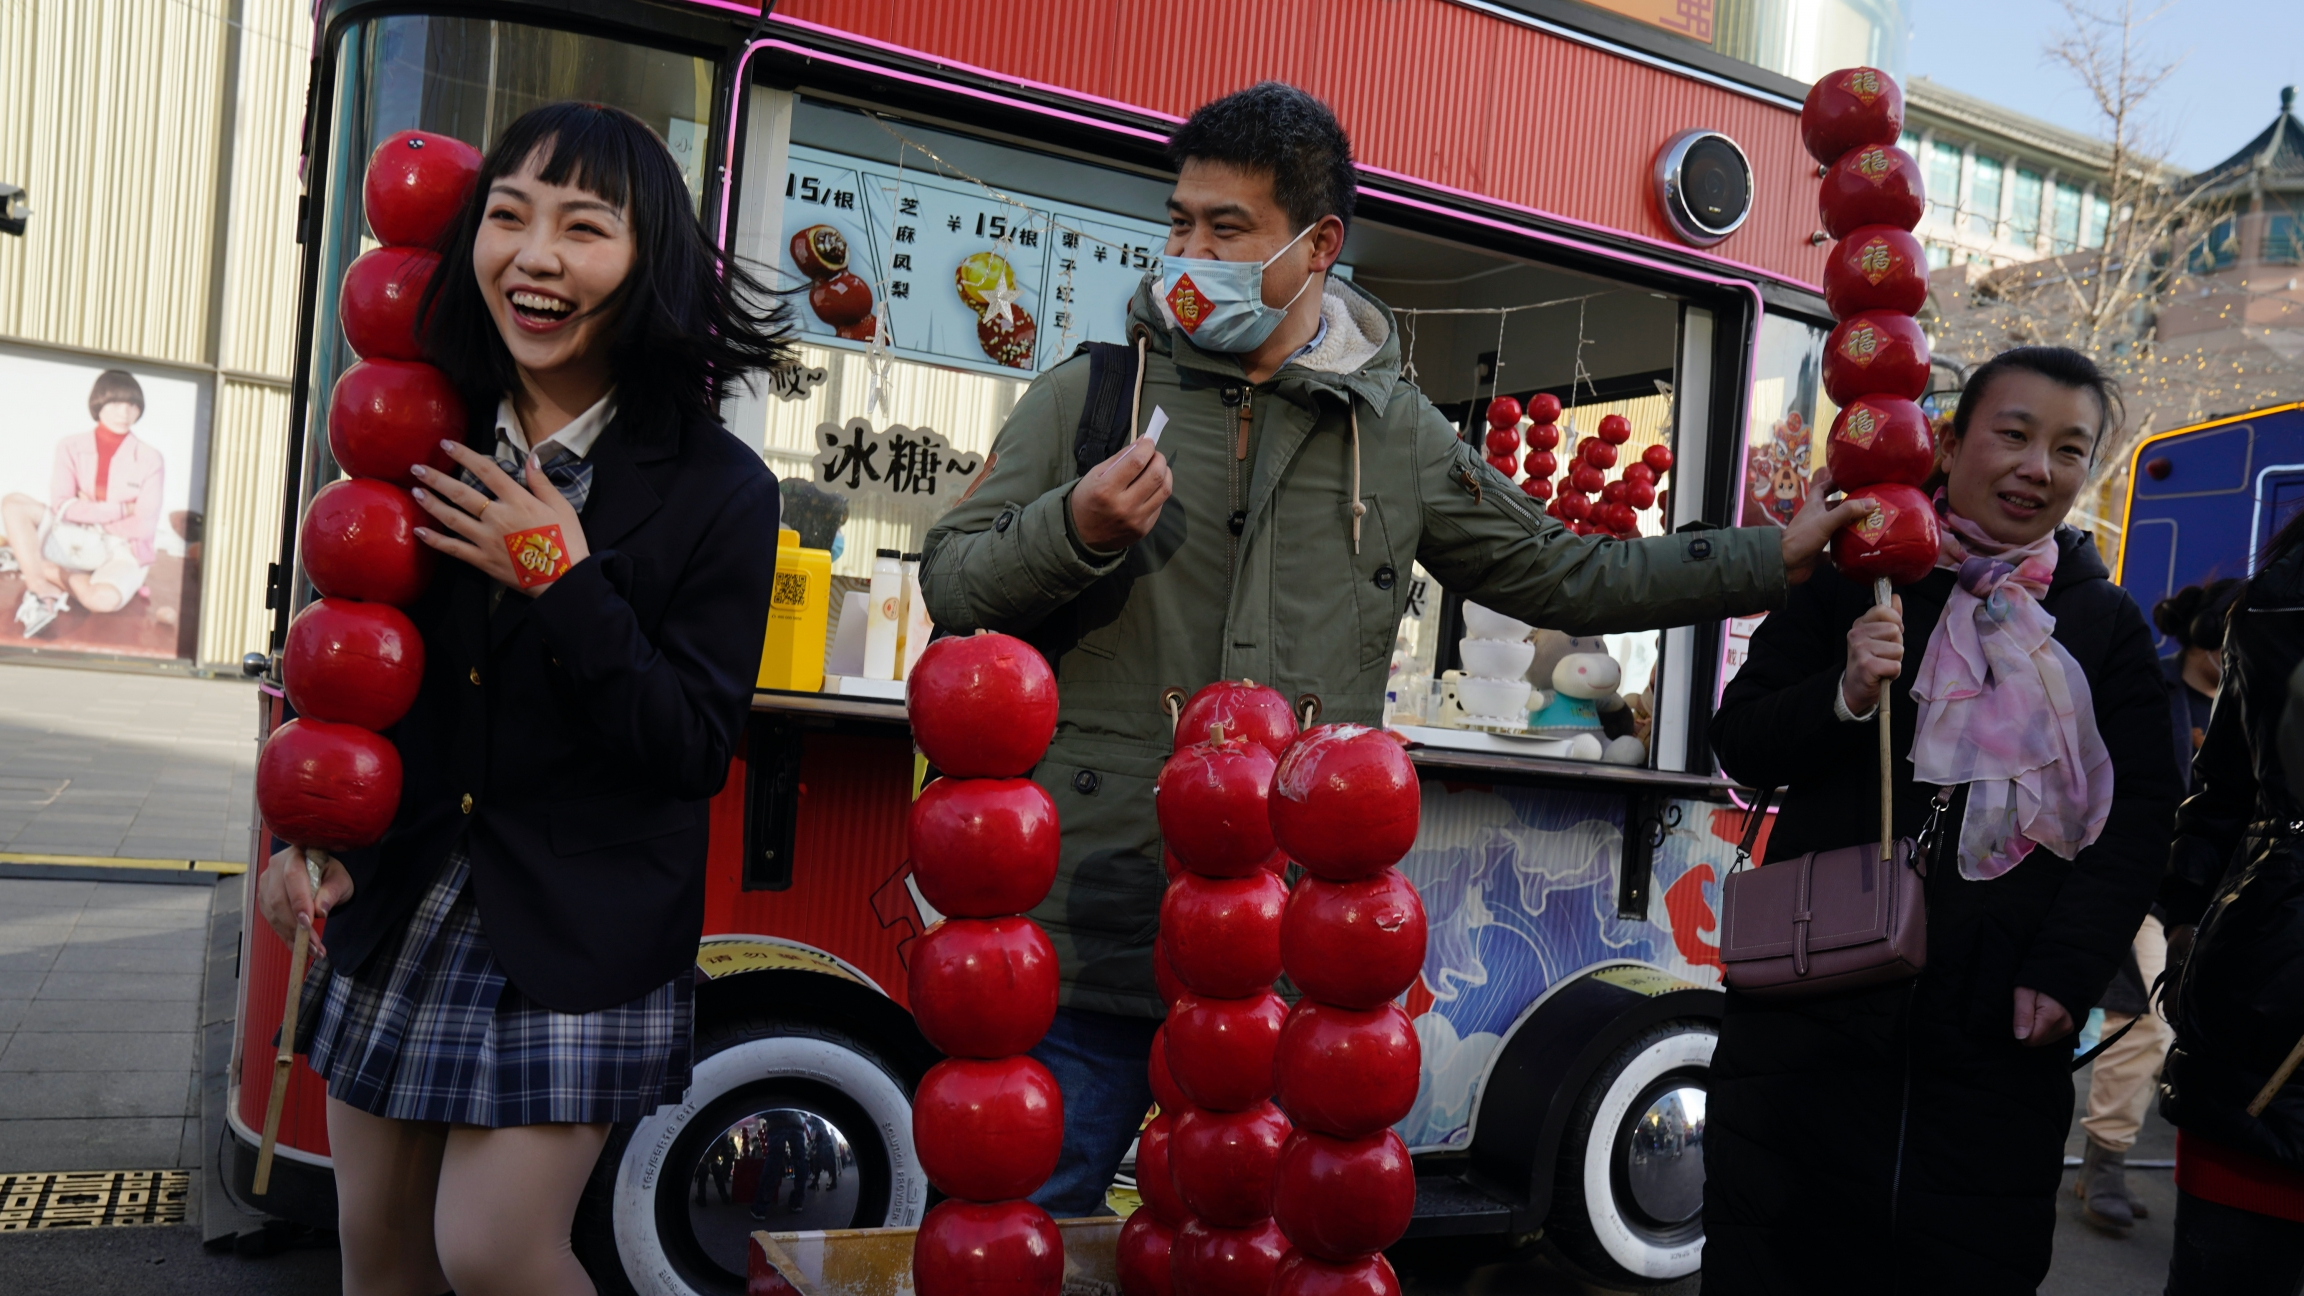 A Chinese woman reacts as she holds a giant replica of candy haw, a popular Beijing snack, at a street stall near Wangfujing on the fourth day of the Lunar Chinese New Year in Beijing on Feb. 15, 2021.